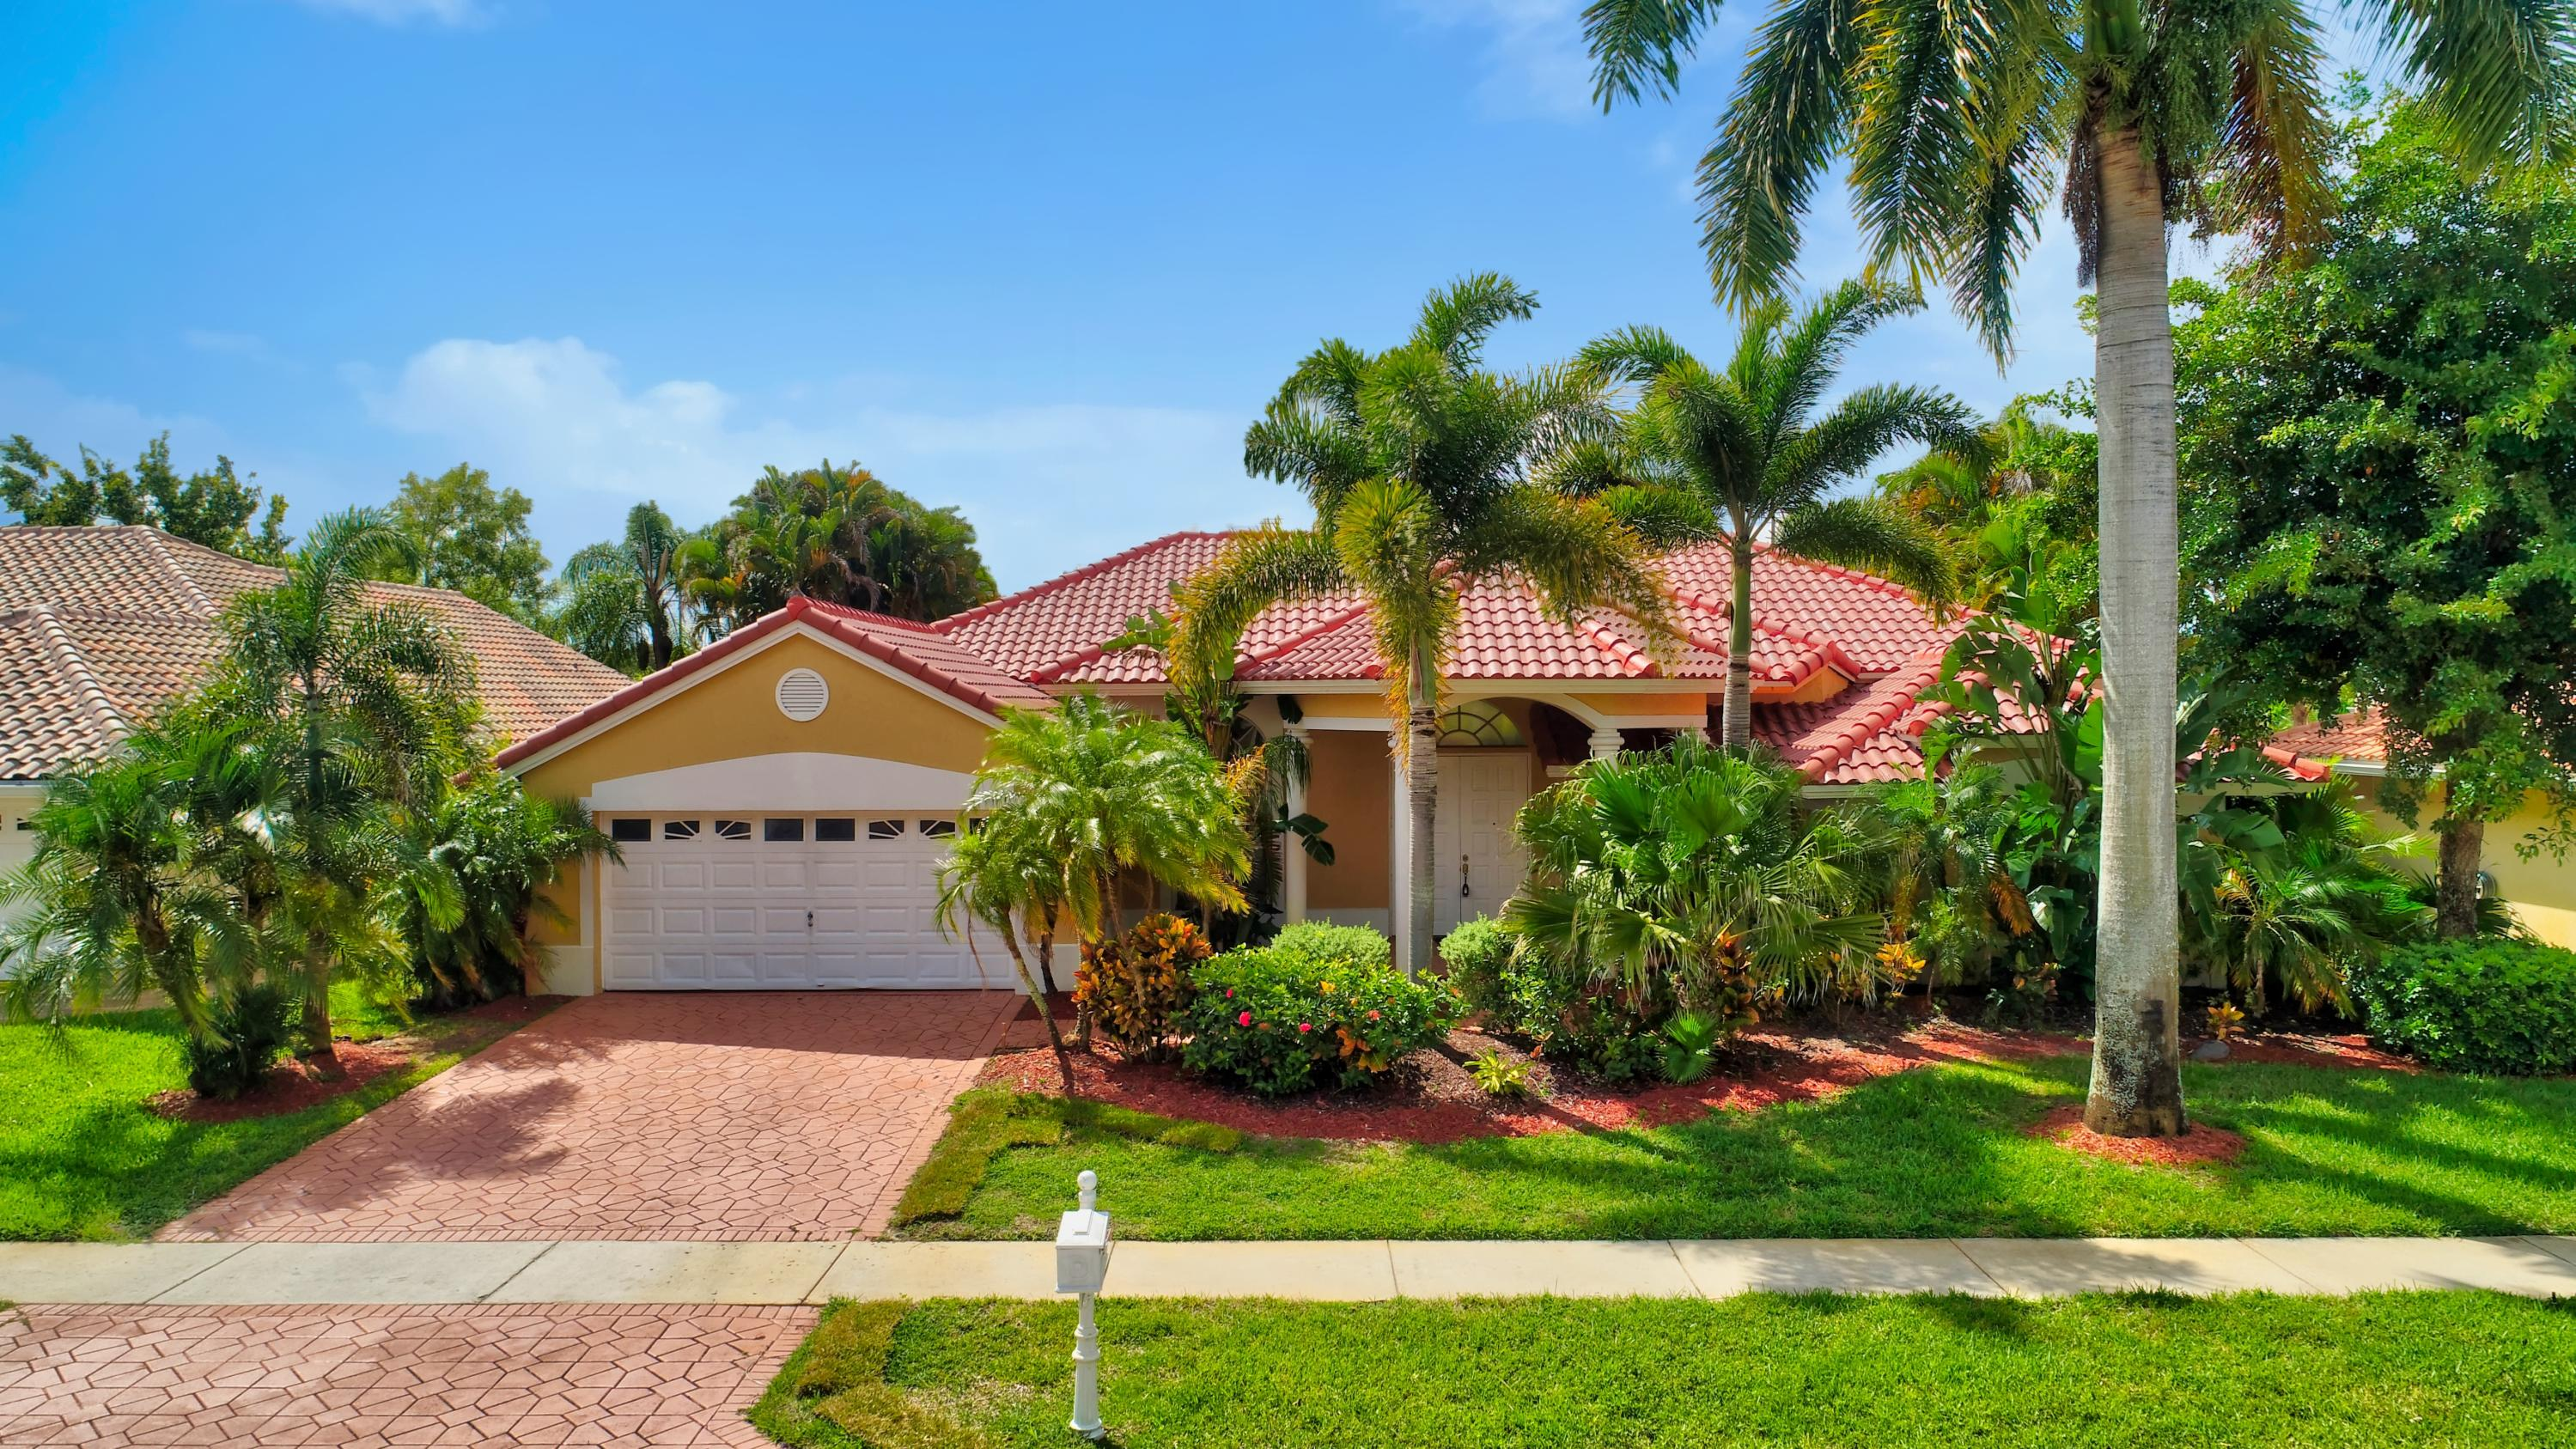 Photo of 19220 Cloister Lake Lane, Boca Raton, FL 33498